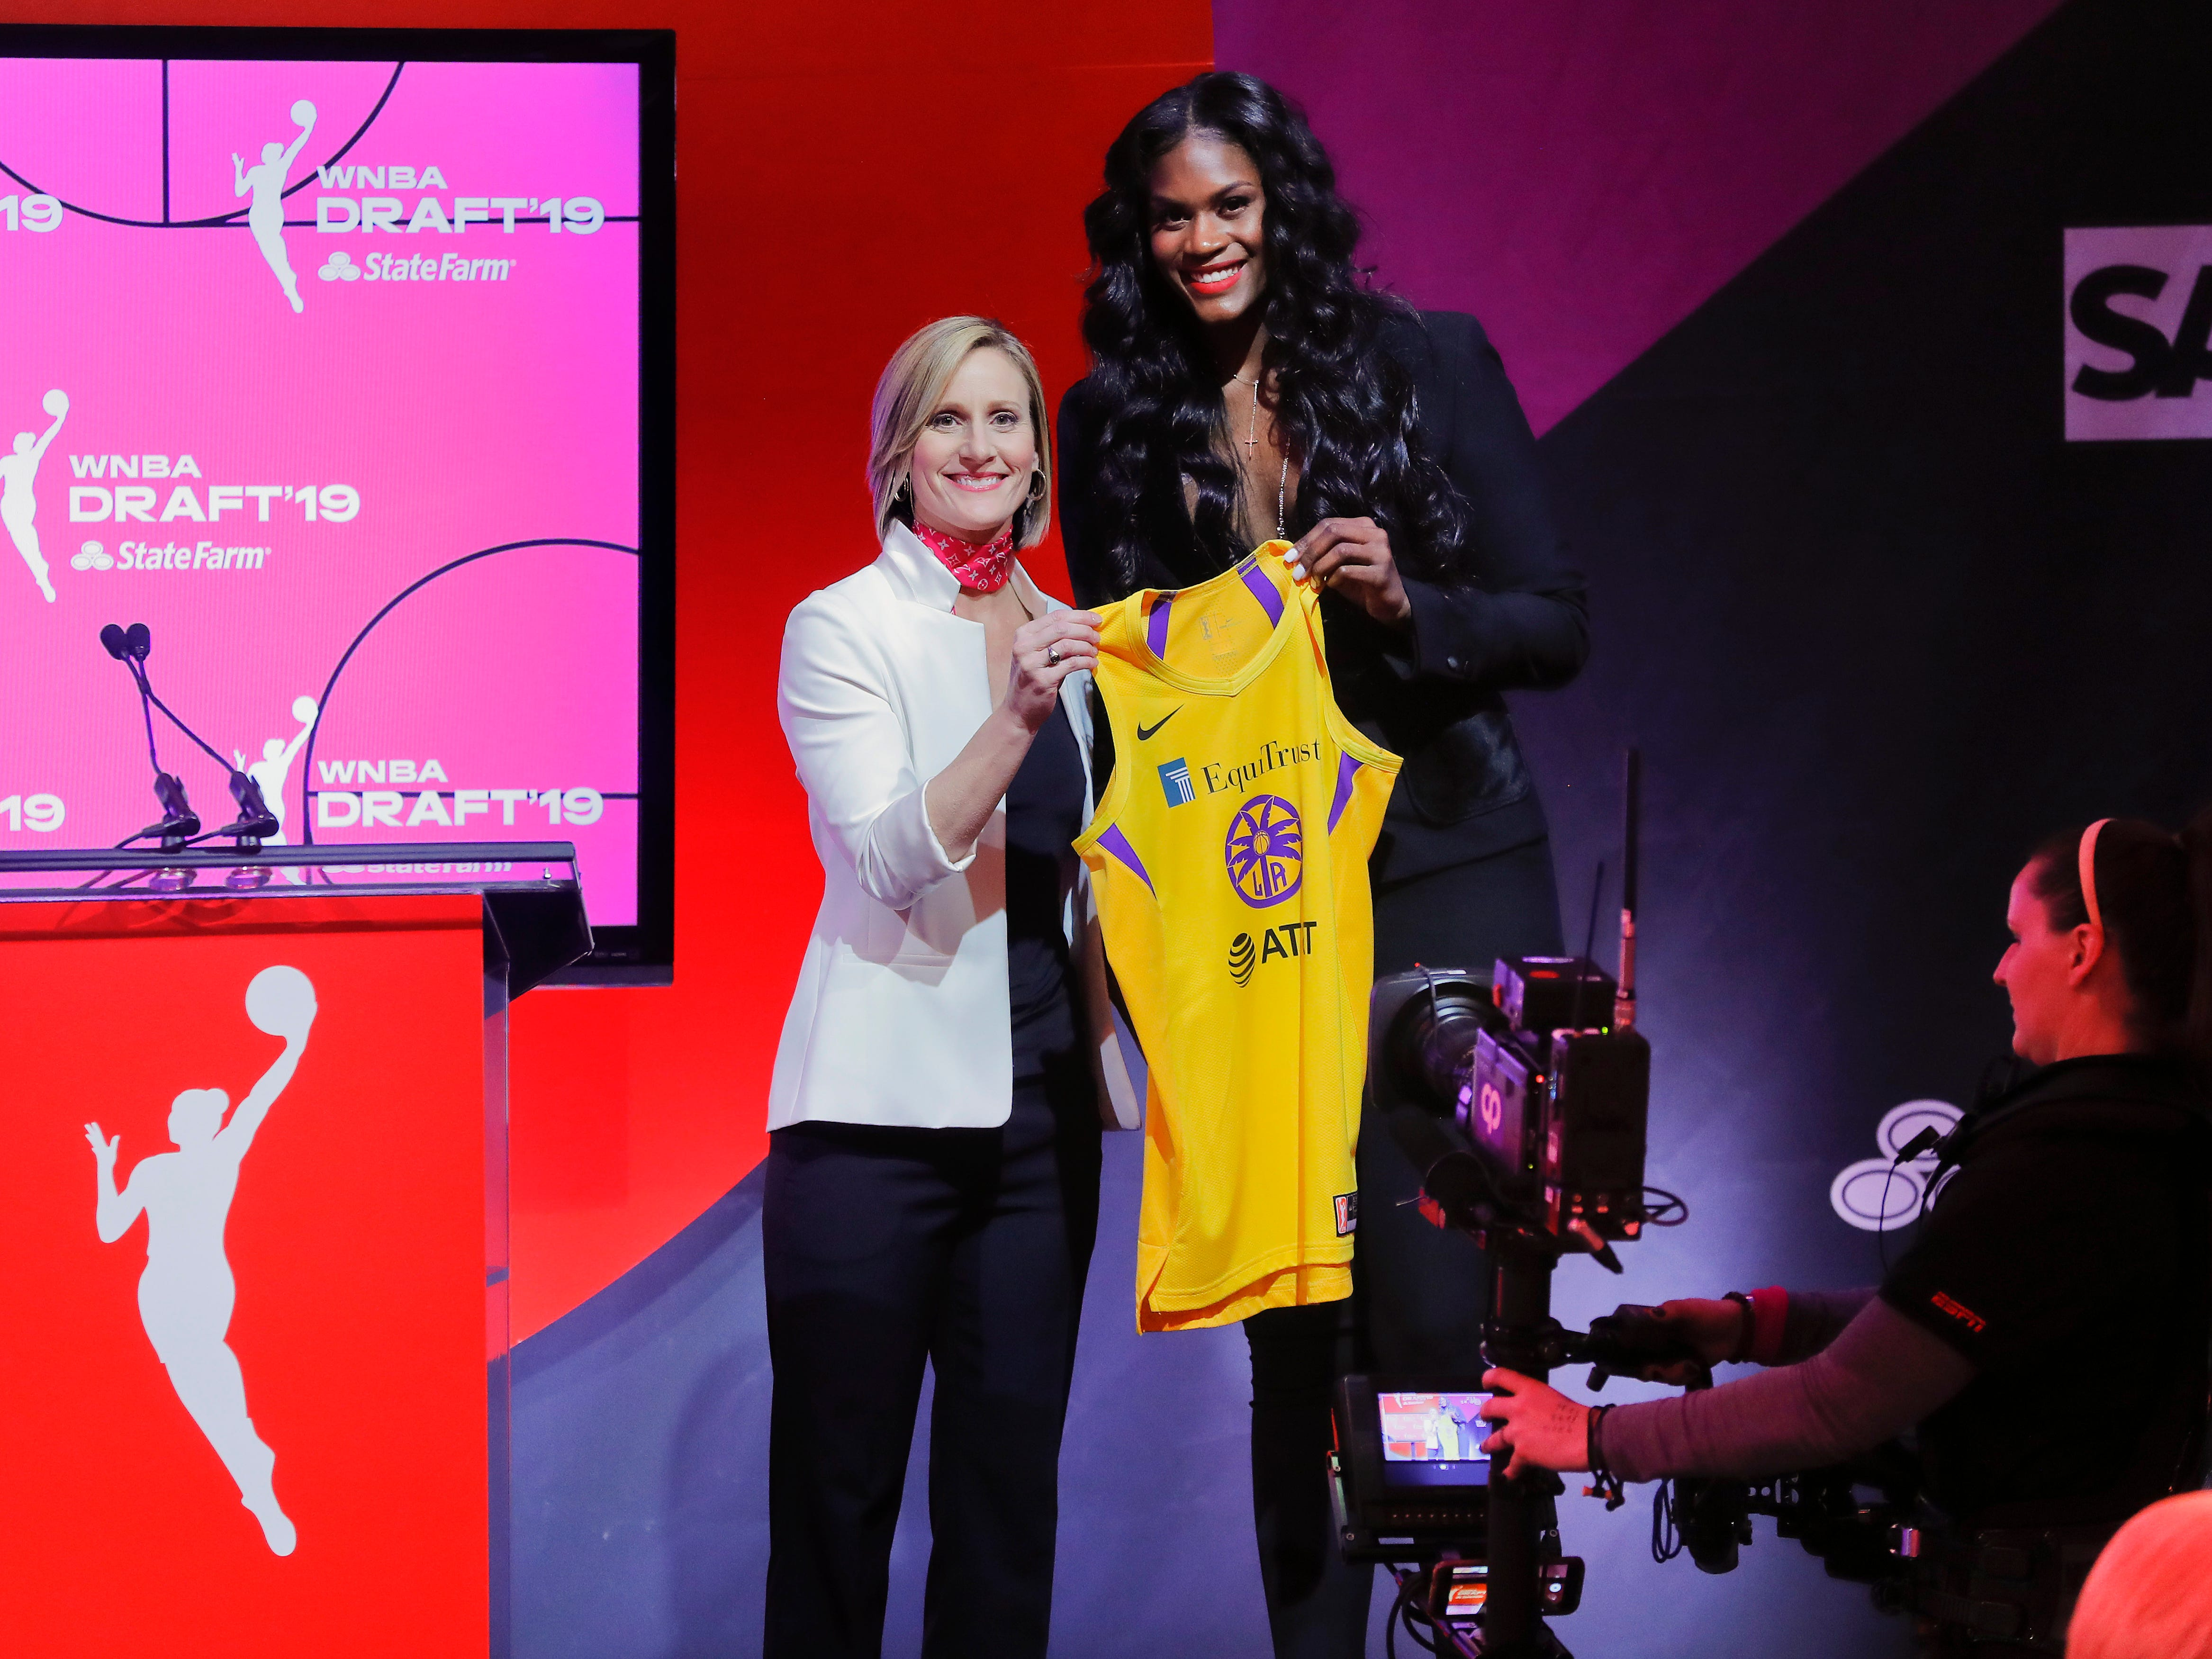 Baylor's Kalani Brown poses for a photo with WNBA COO Christy Hedgpeth after being selected by the Los Angeles Sparks as the seventh overall pick in the WNBA draft.